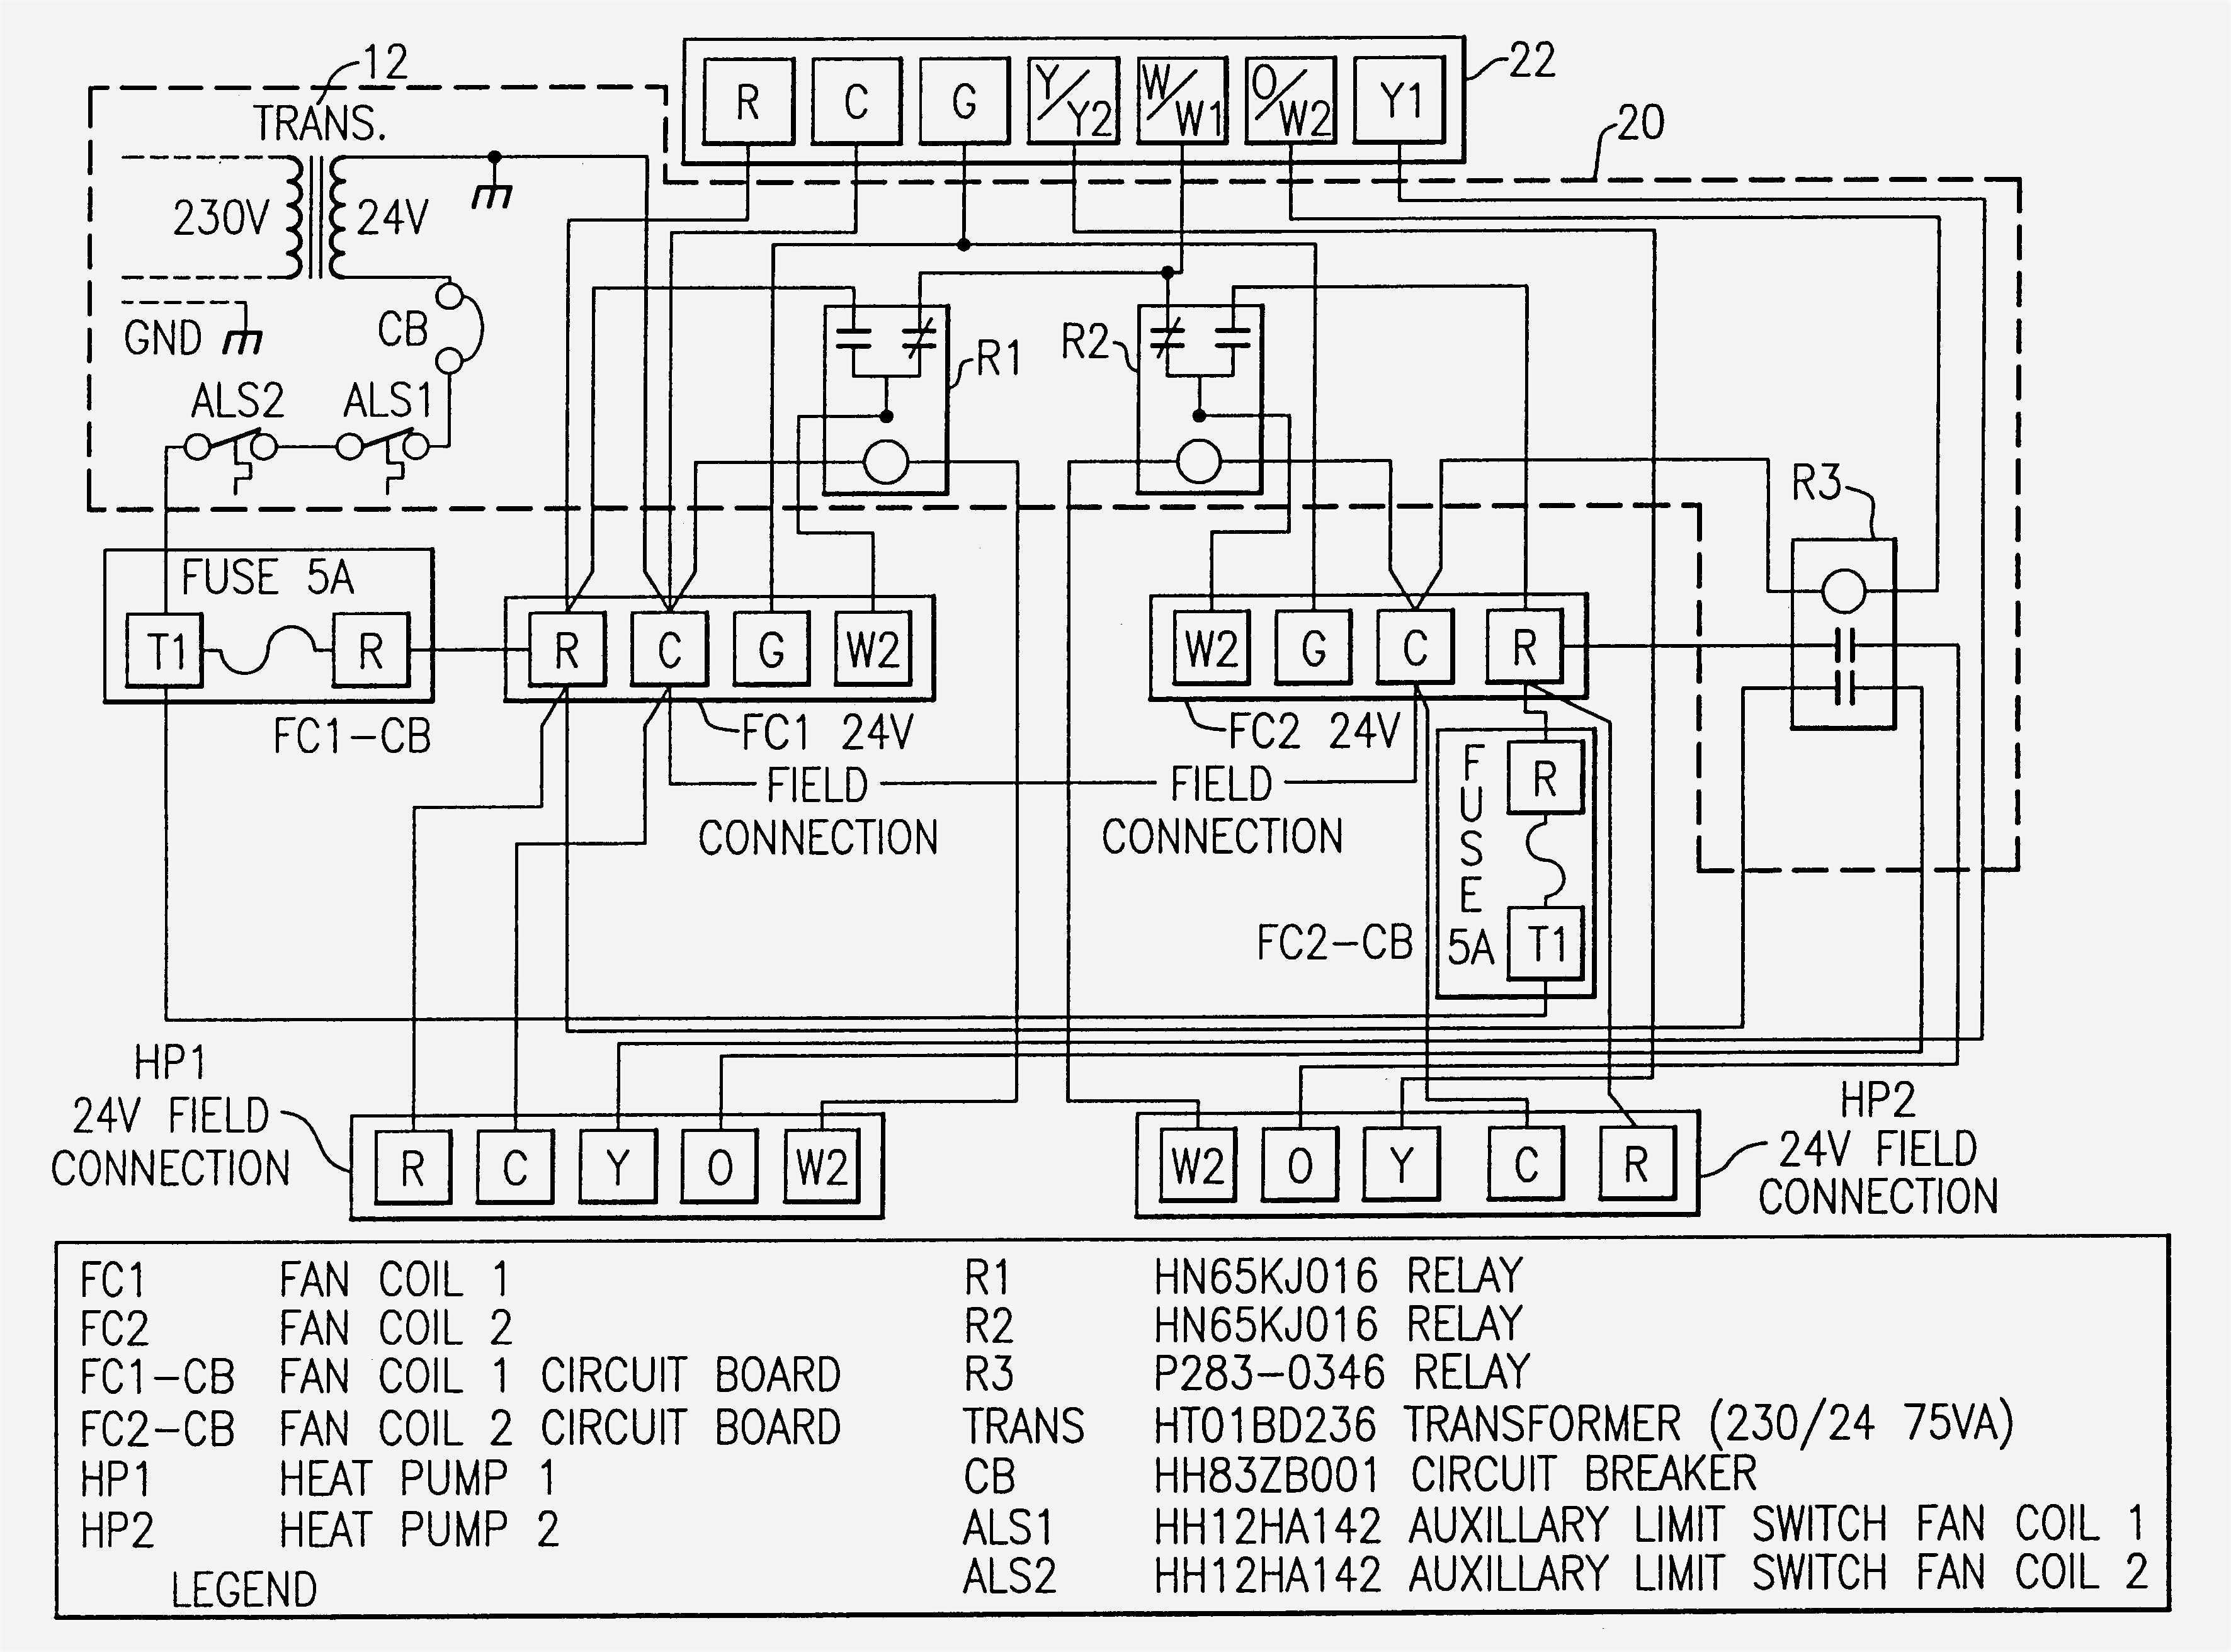 Payne Electric Furnace Sequencer Wiring Diagram | Wiring Diagram - Electric Furnace Sequencer Wiring Diagram